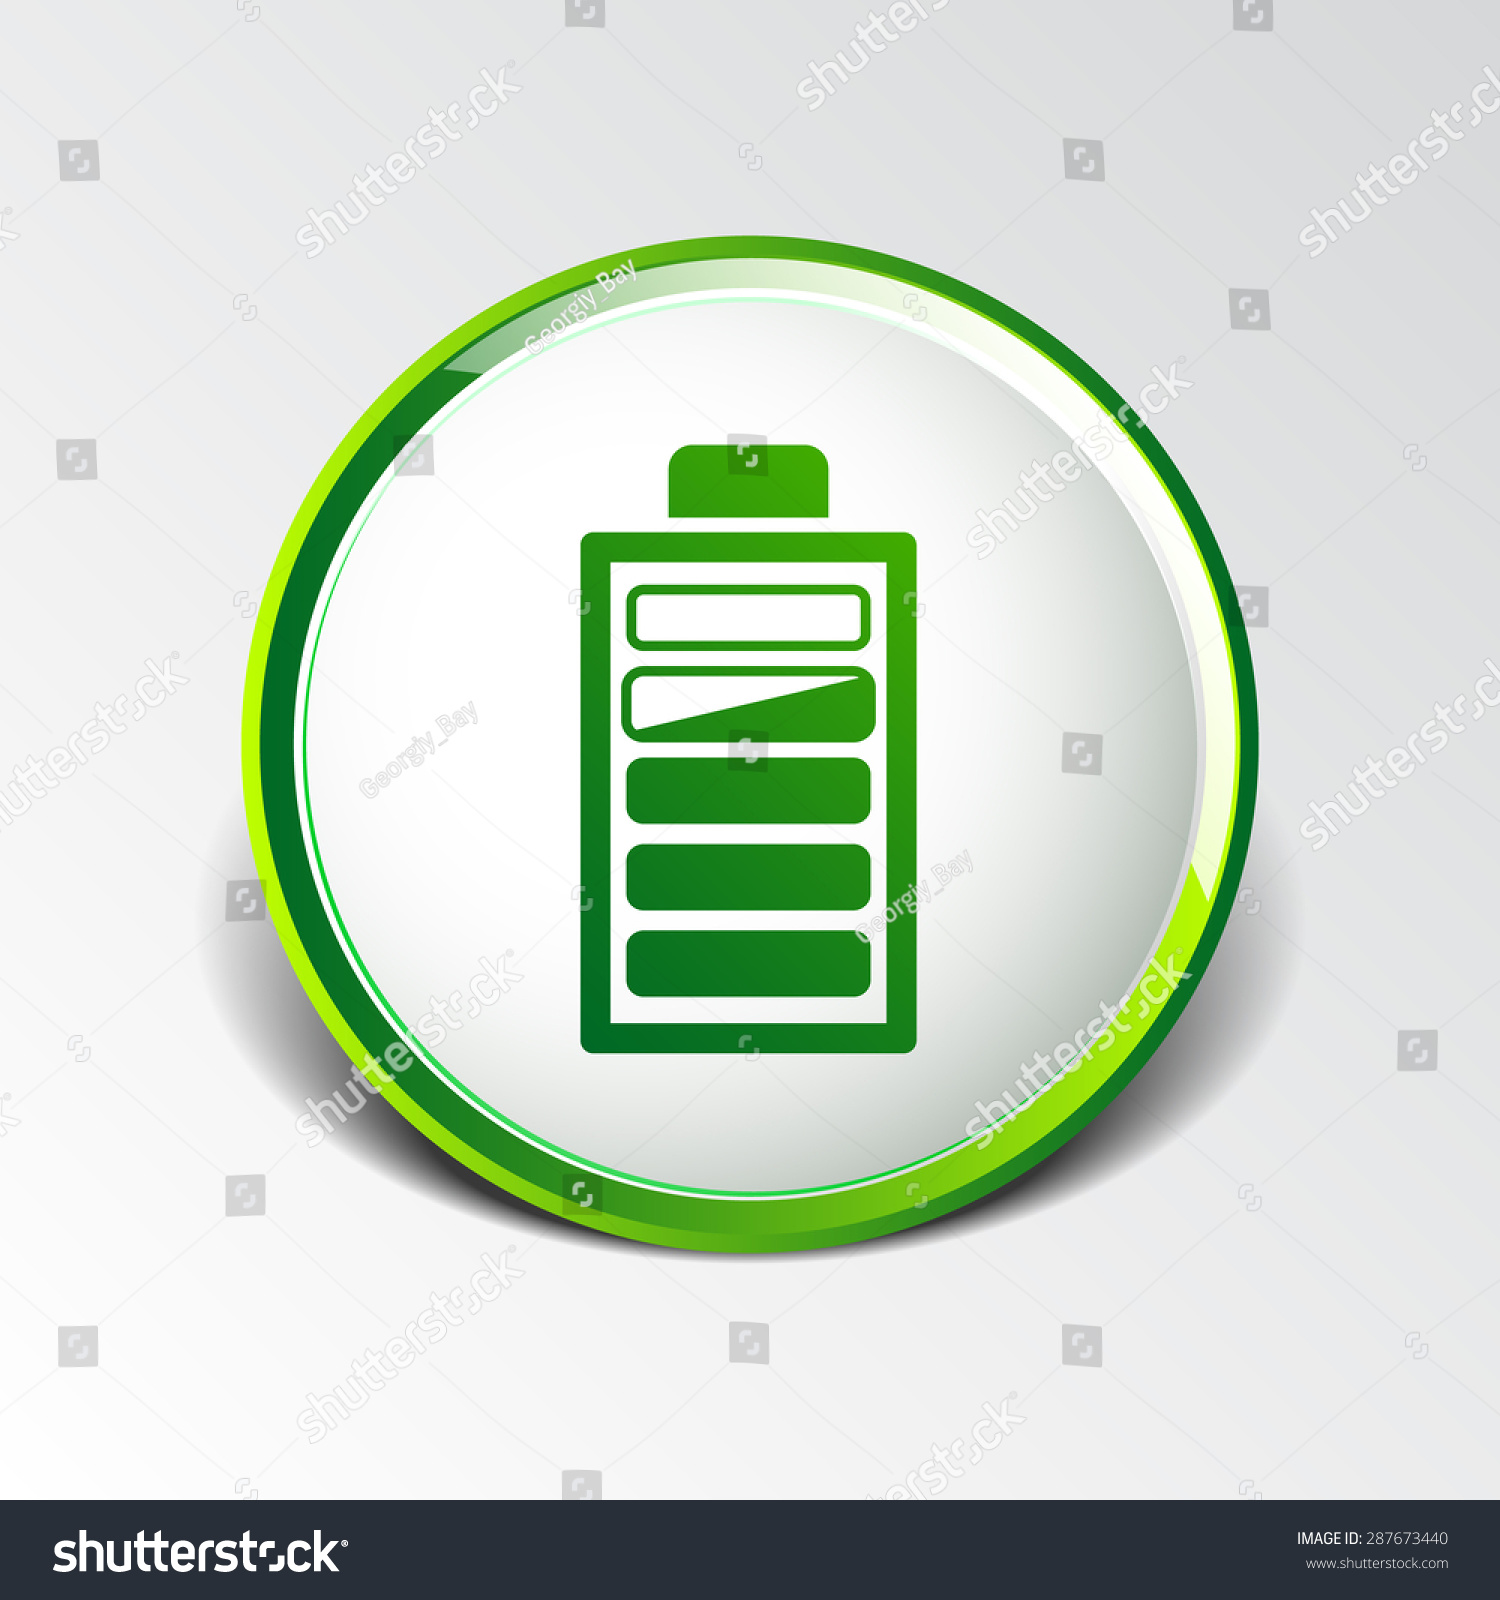 Icon vector power load sign symbol stock vector 287673440 icon vector power load sign symbol supply level biocorpaavc